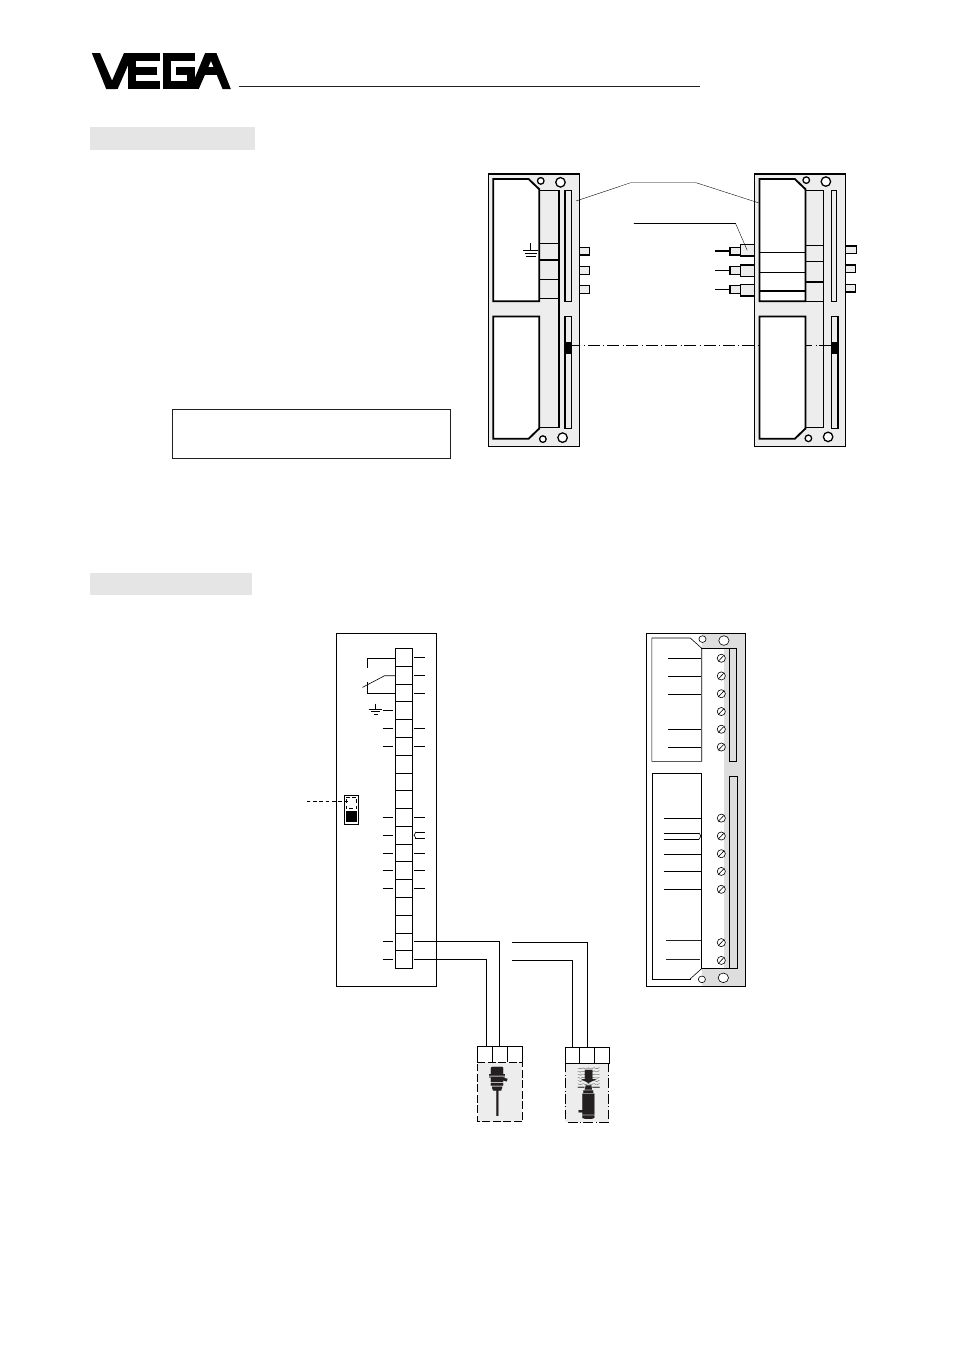 technical information electrical connection mounting instructions rh manualsdir com Army Technical Manuals technical information manual